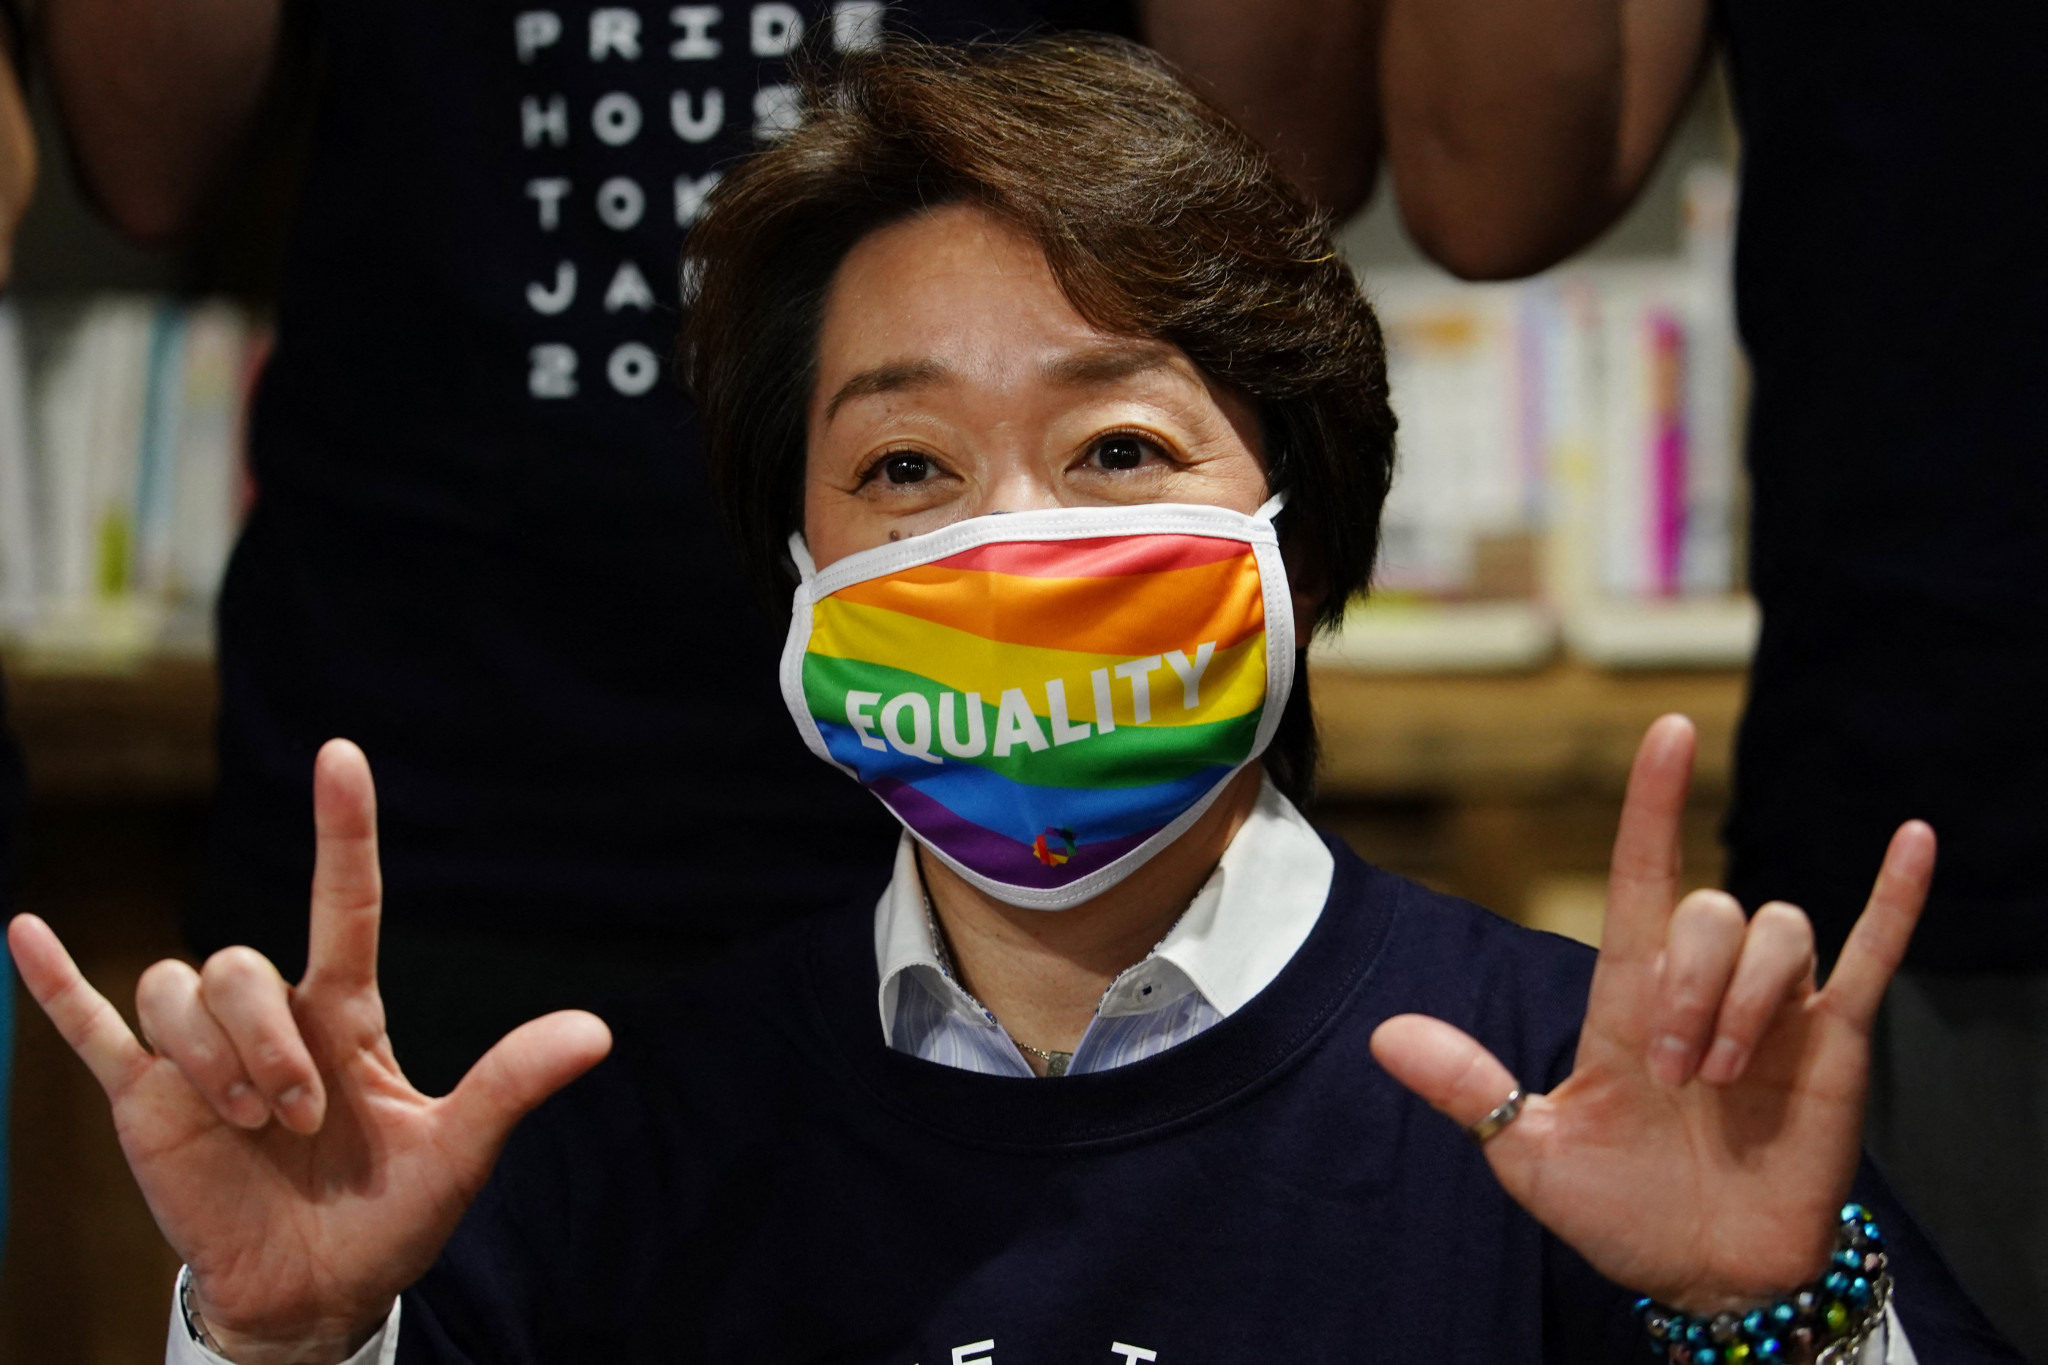 Tokyo 2020 President Seiko Hashimoto visited Pride House Tokyo earlier this year ©Getty Images